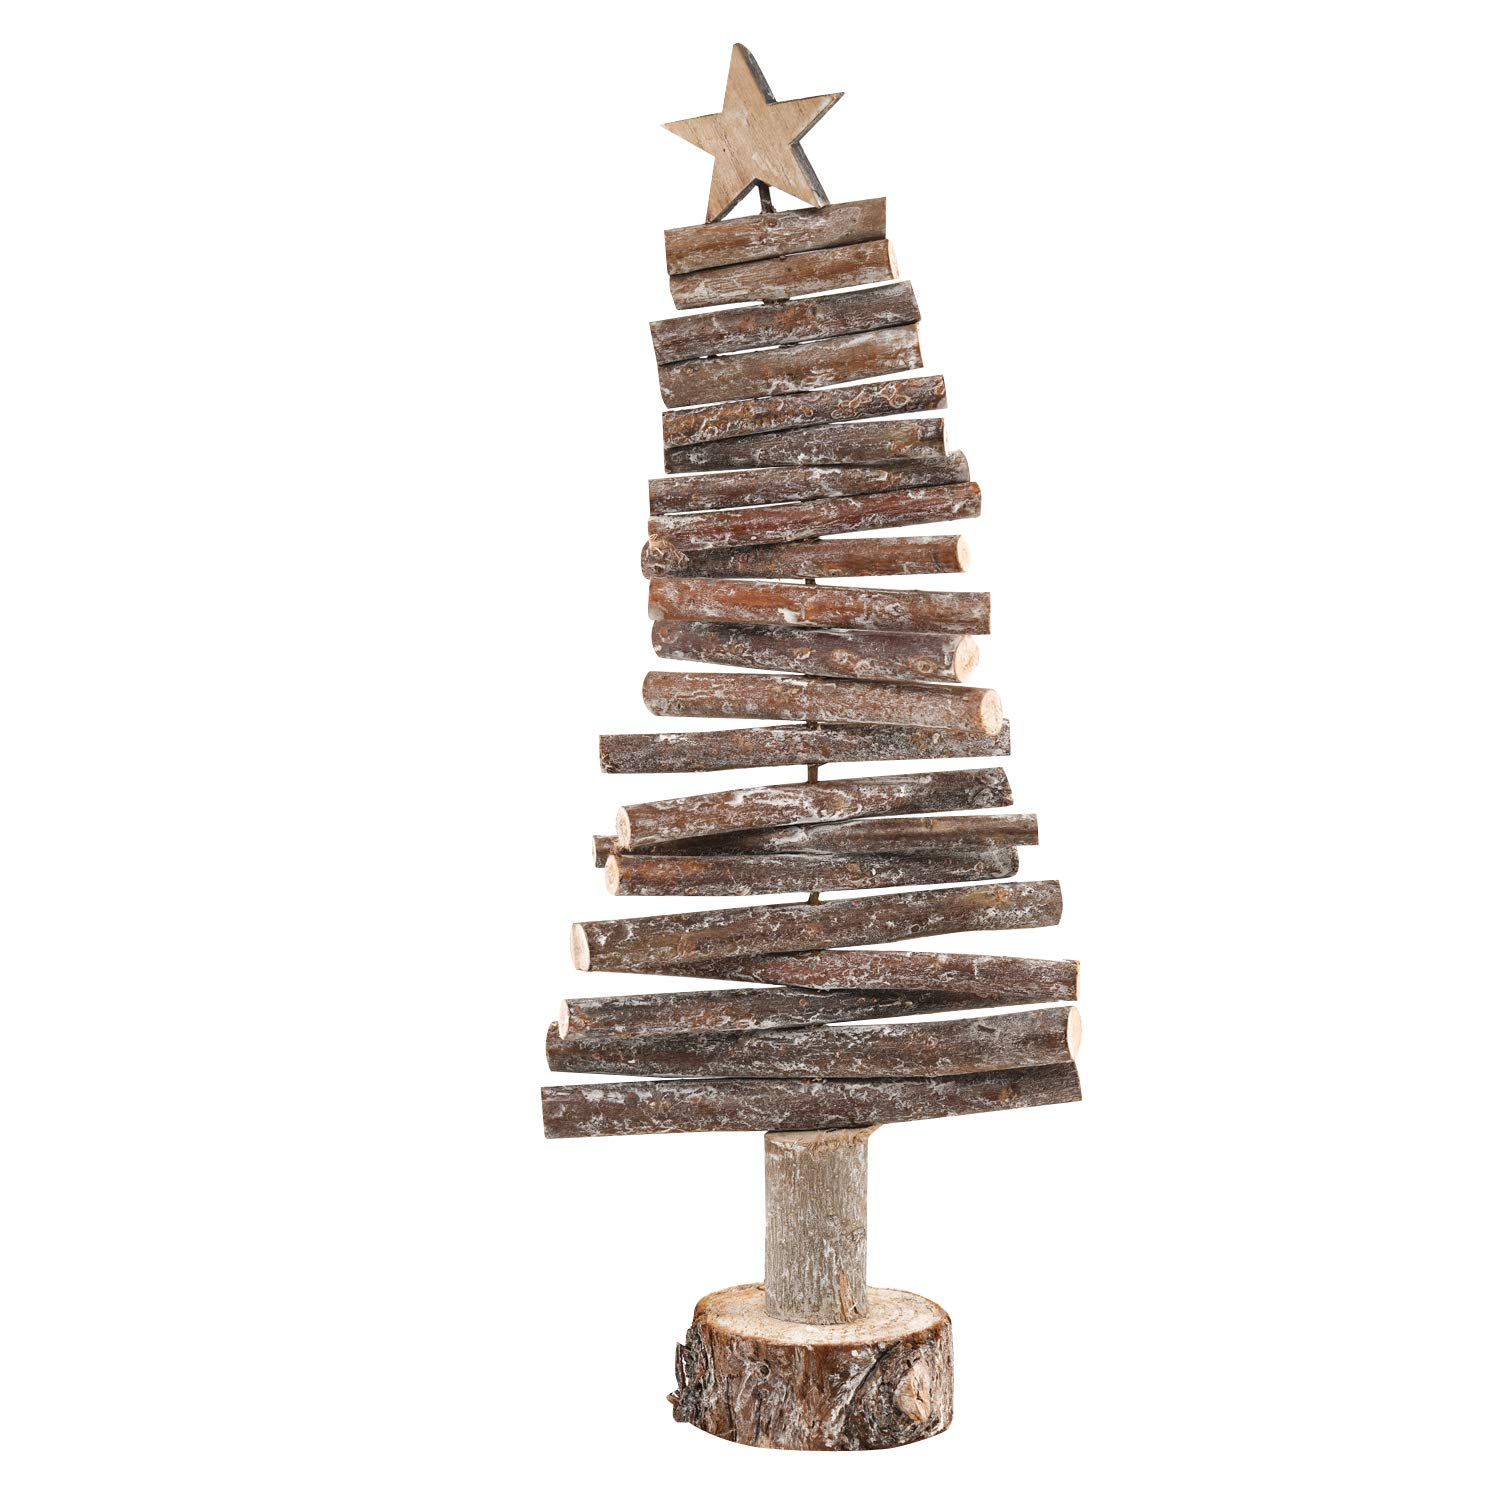 QILICHZ 15'' Rustic Handmade Wooden Dowel Christmas Tree Branch for Christmas Table top Decorations